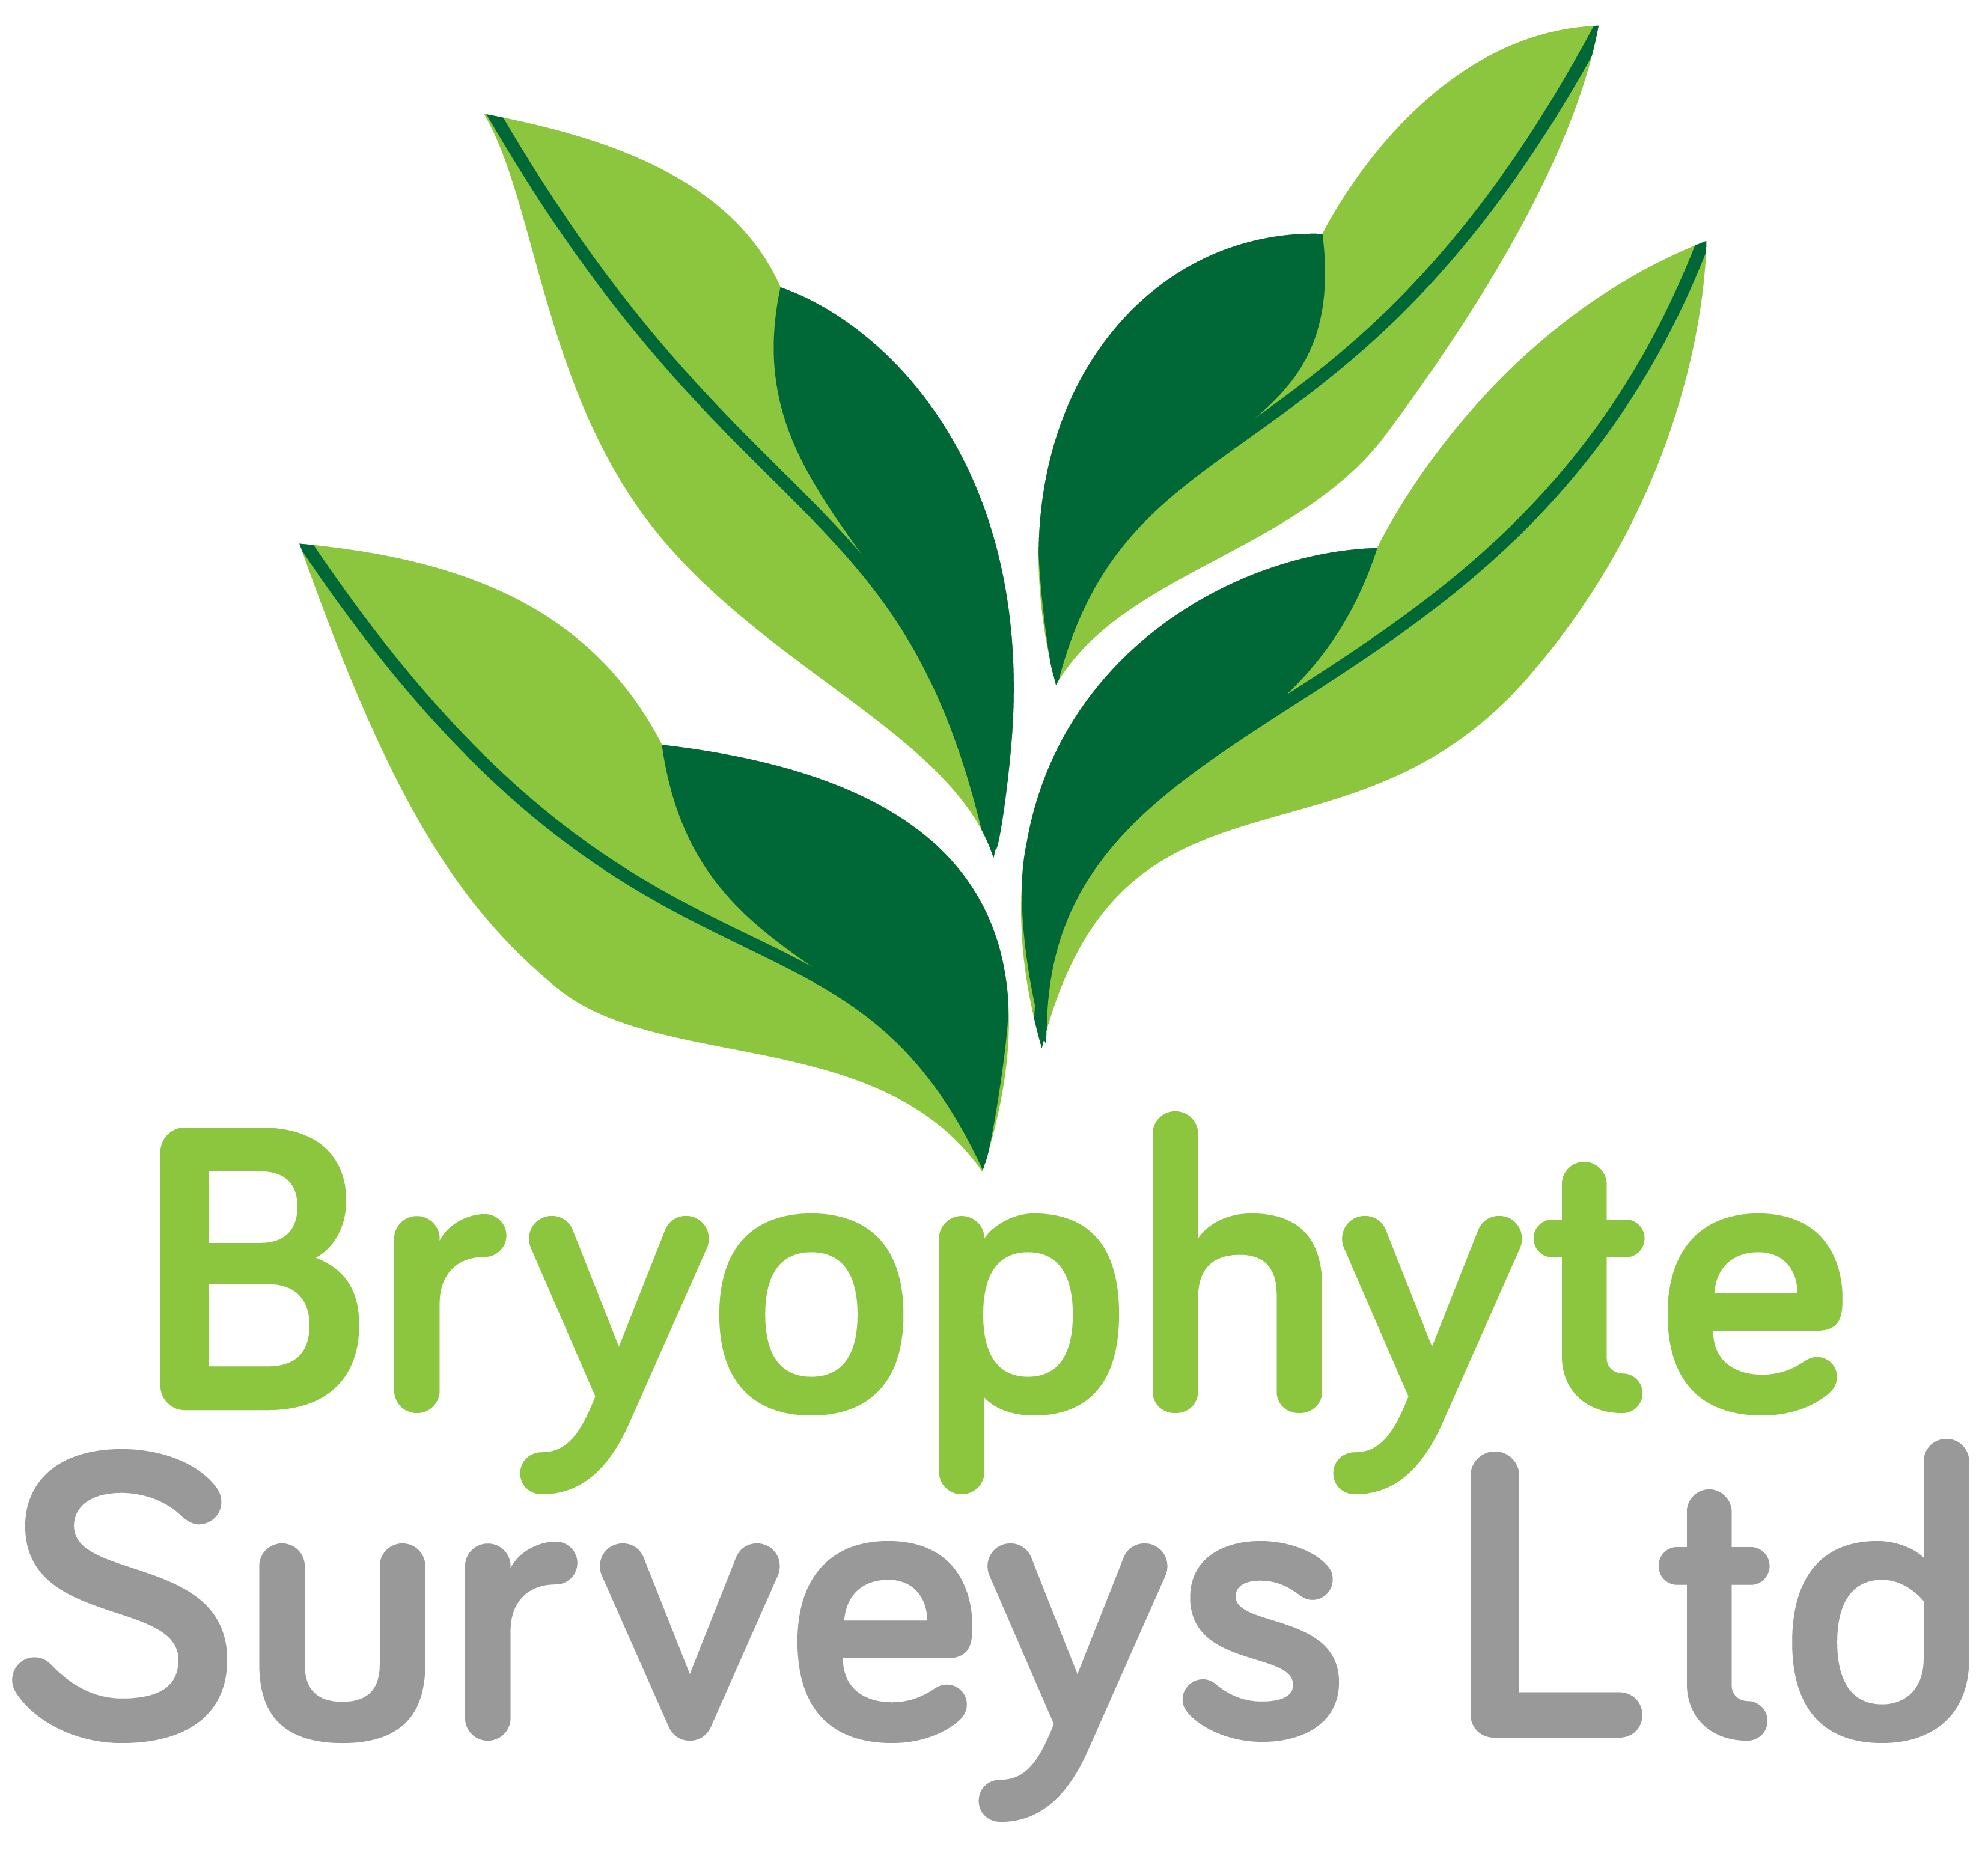 Bryophyte Surveys Ltd